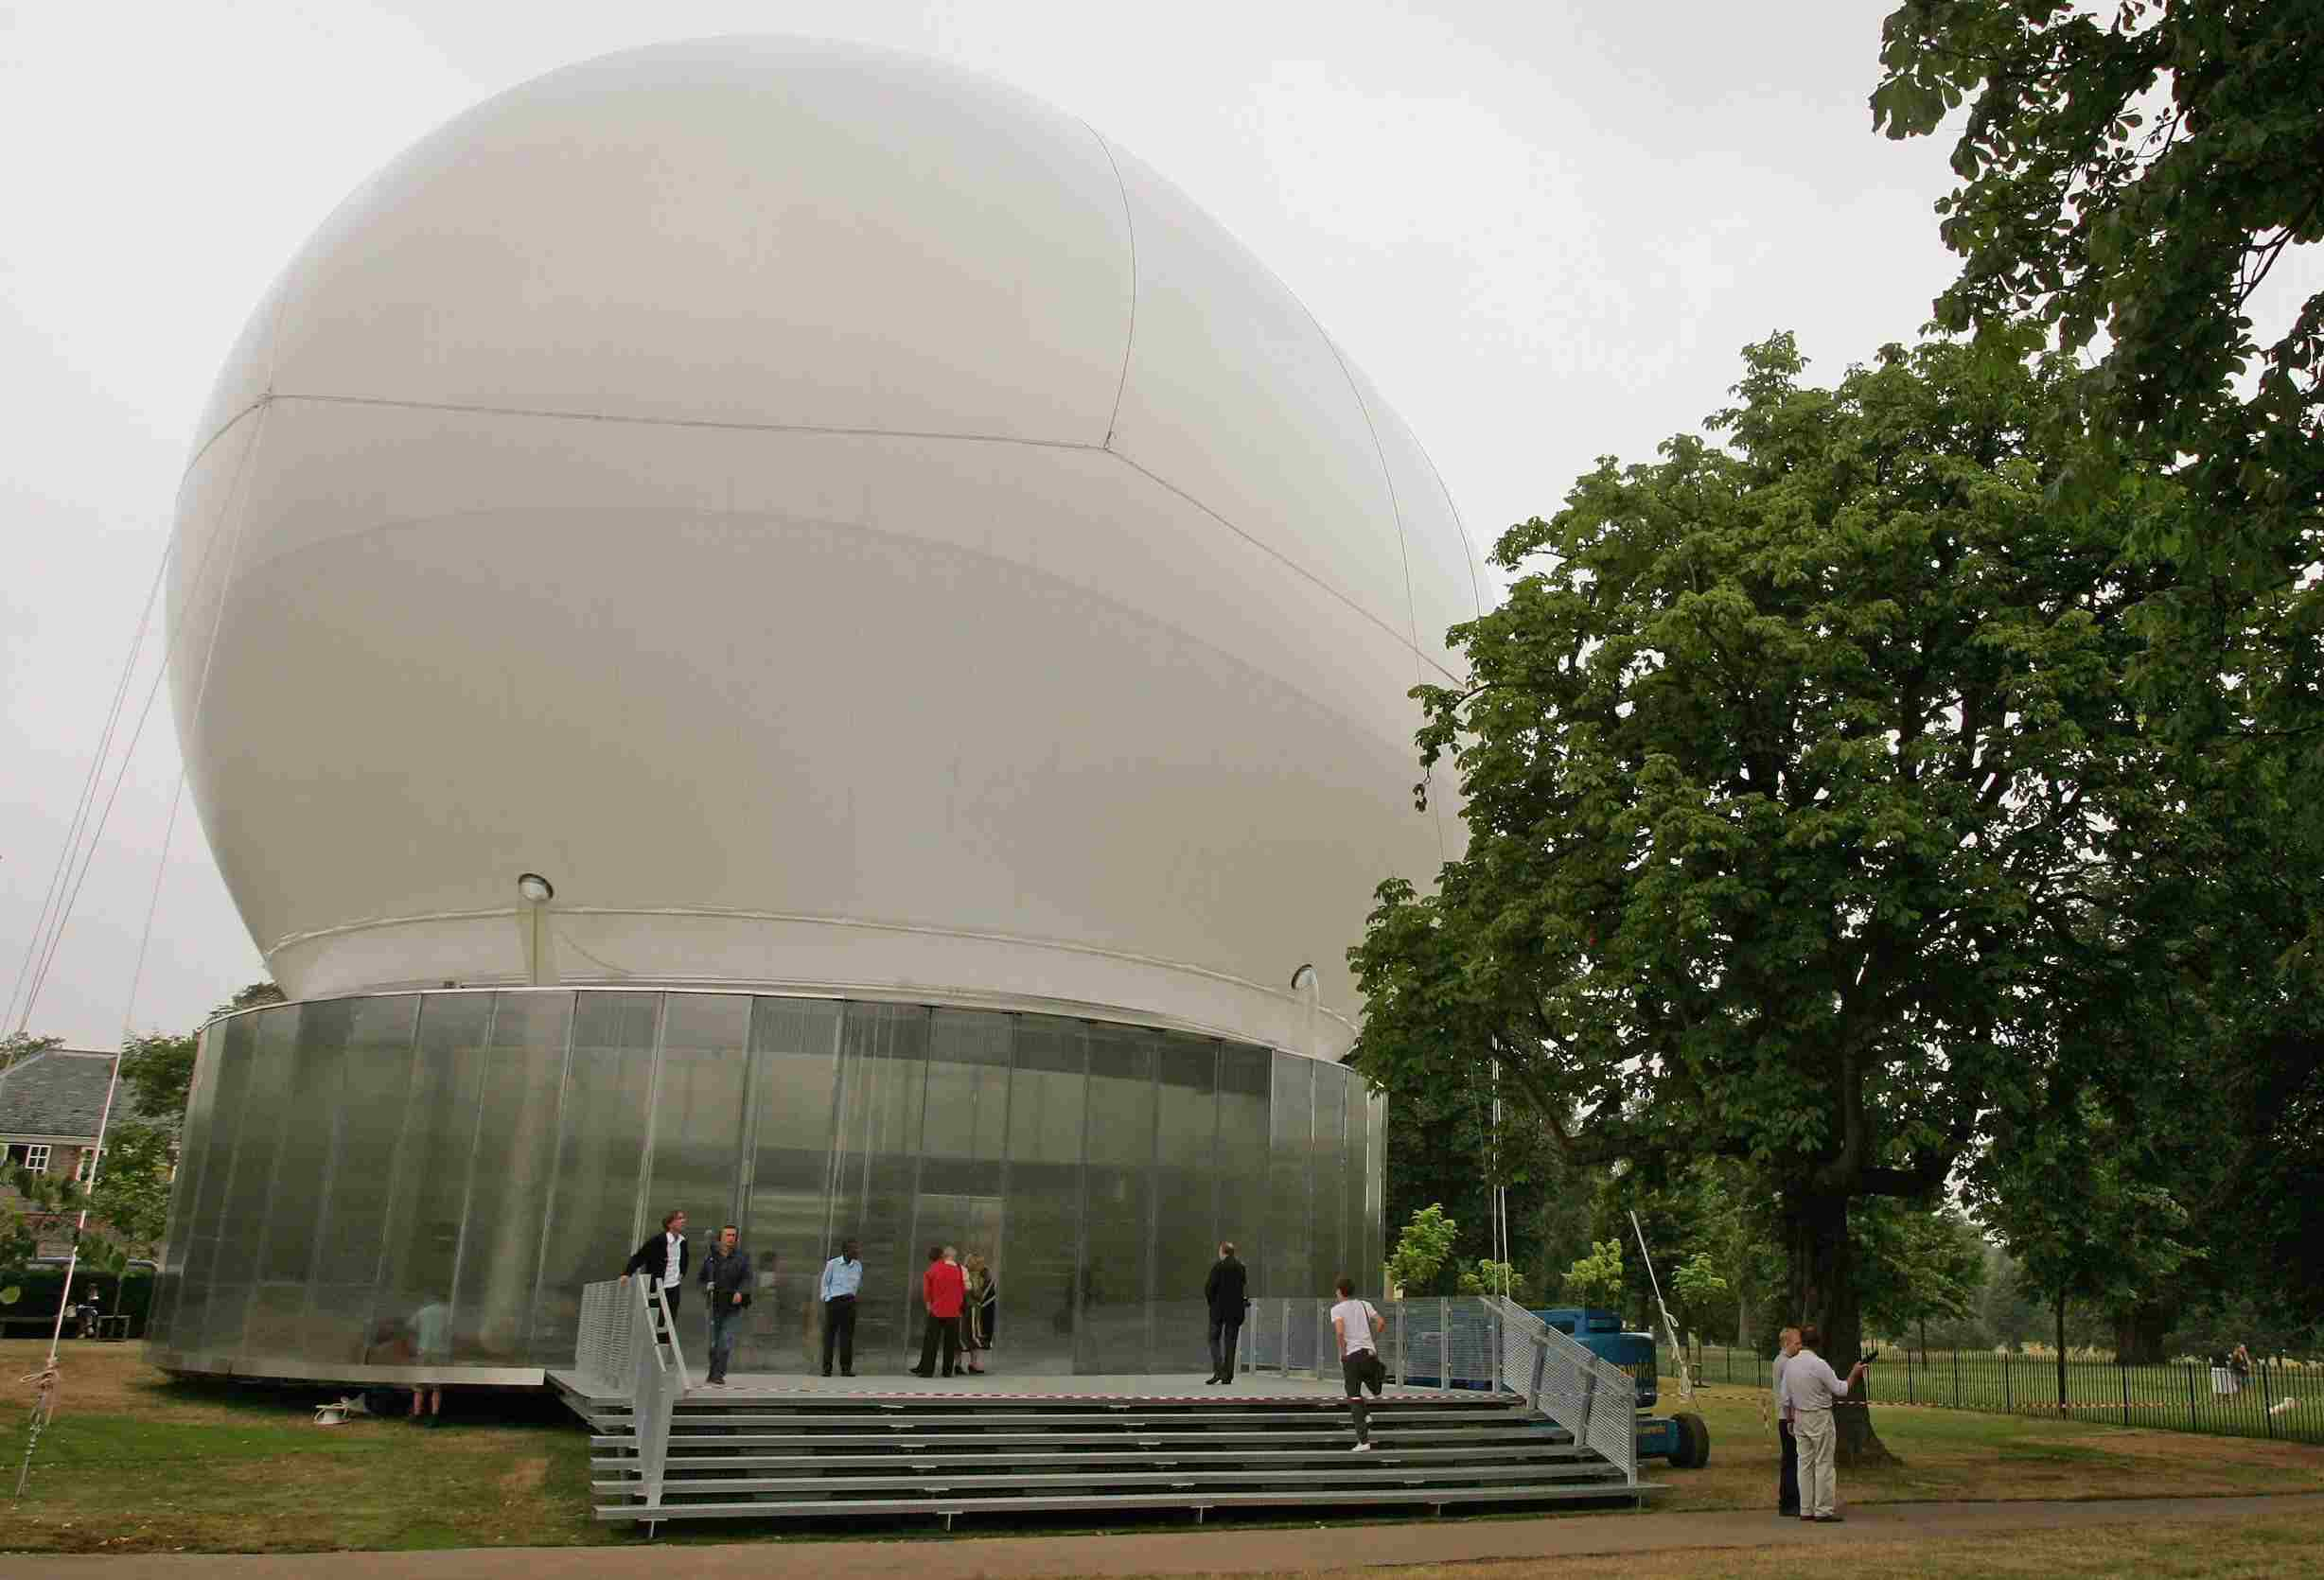 The Serpentine Inflatable Pavilion by architect Rem Koolhaas, 2006, London